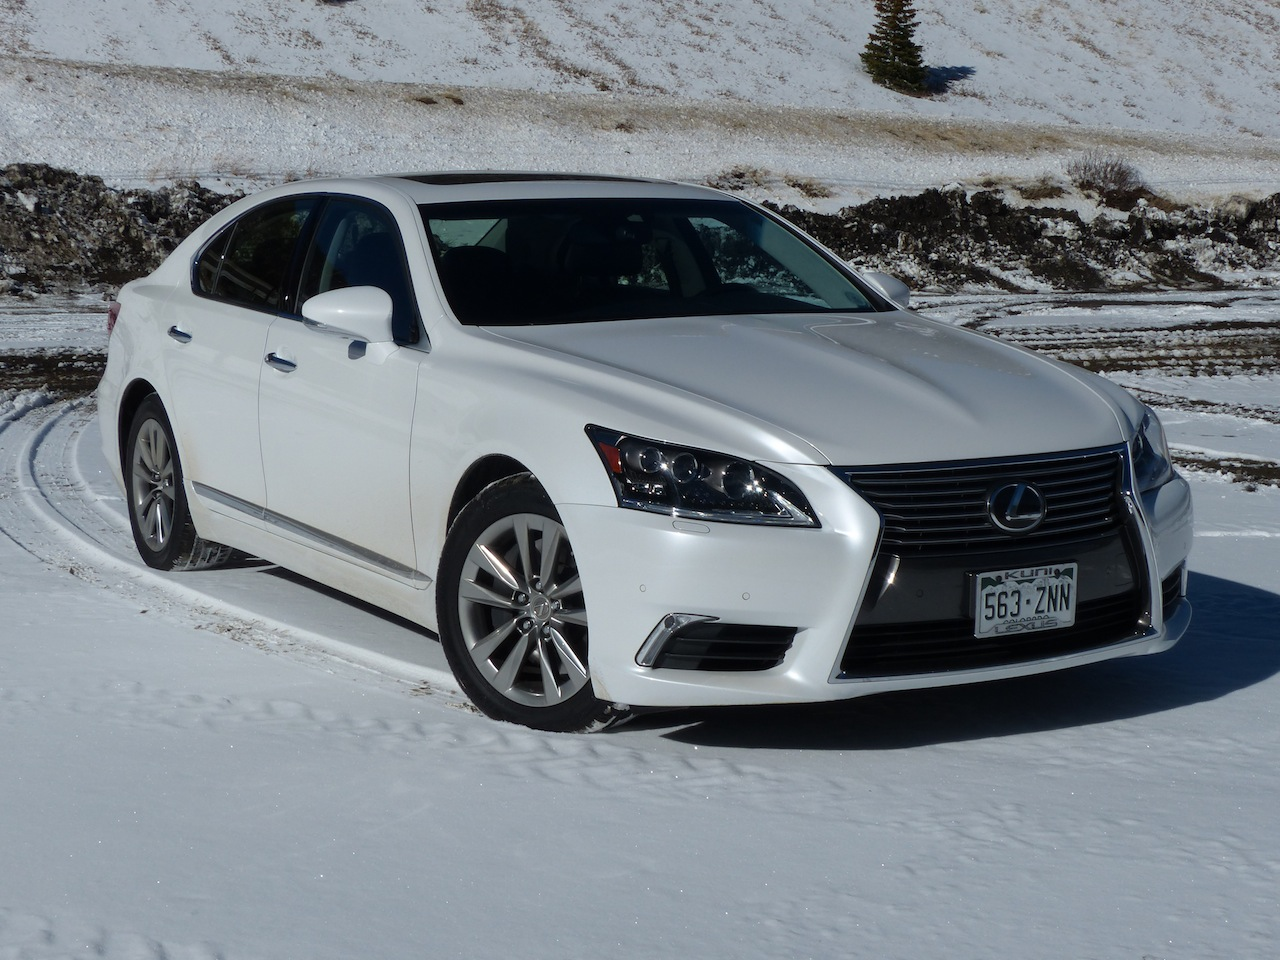 2015 lexus ls 460 information and photos zombiedrive. Black Bedroom Furniture Sets. Home Design Ideas